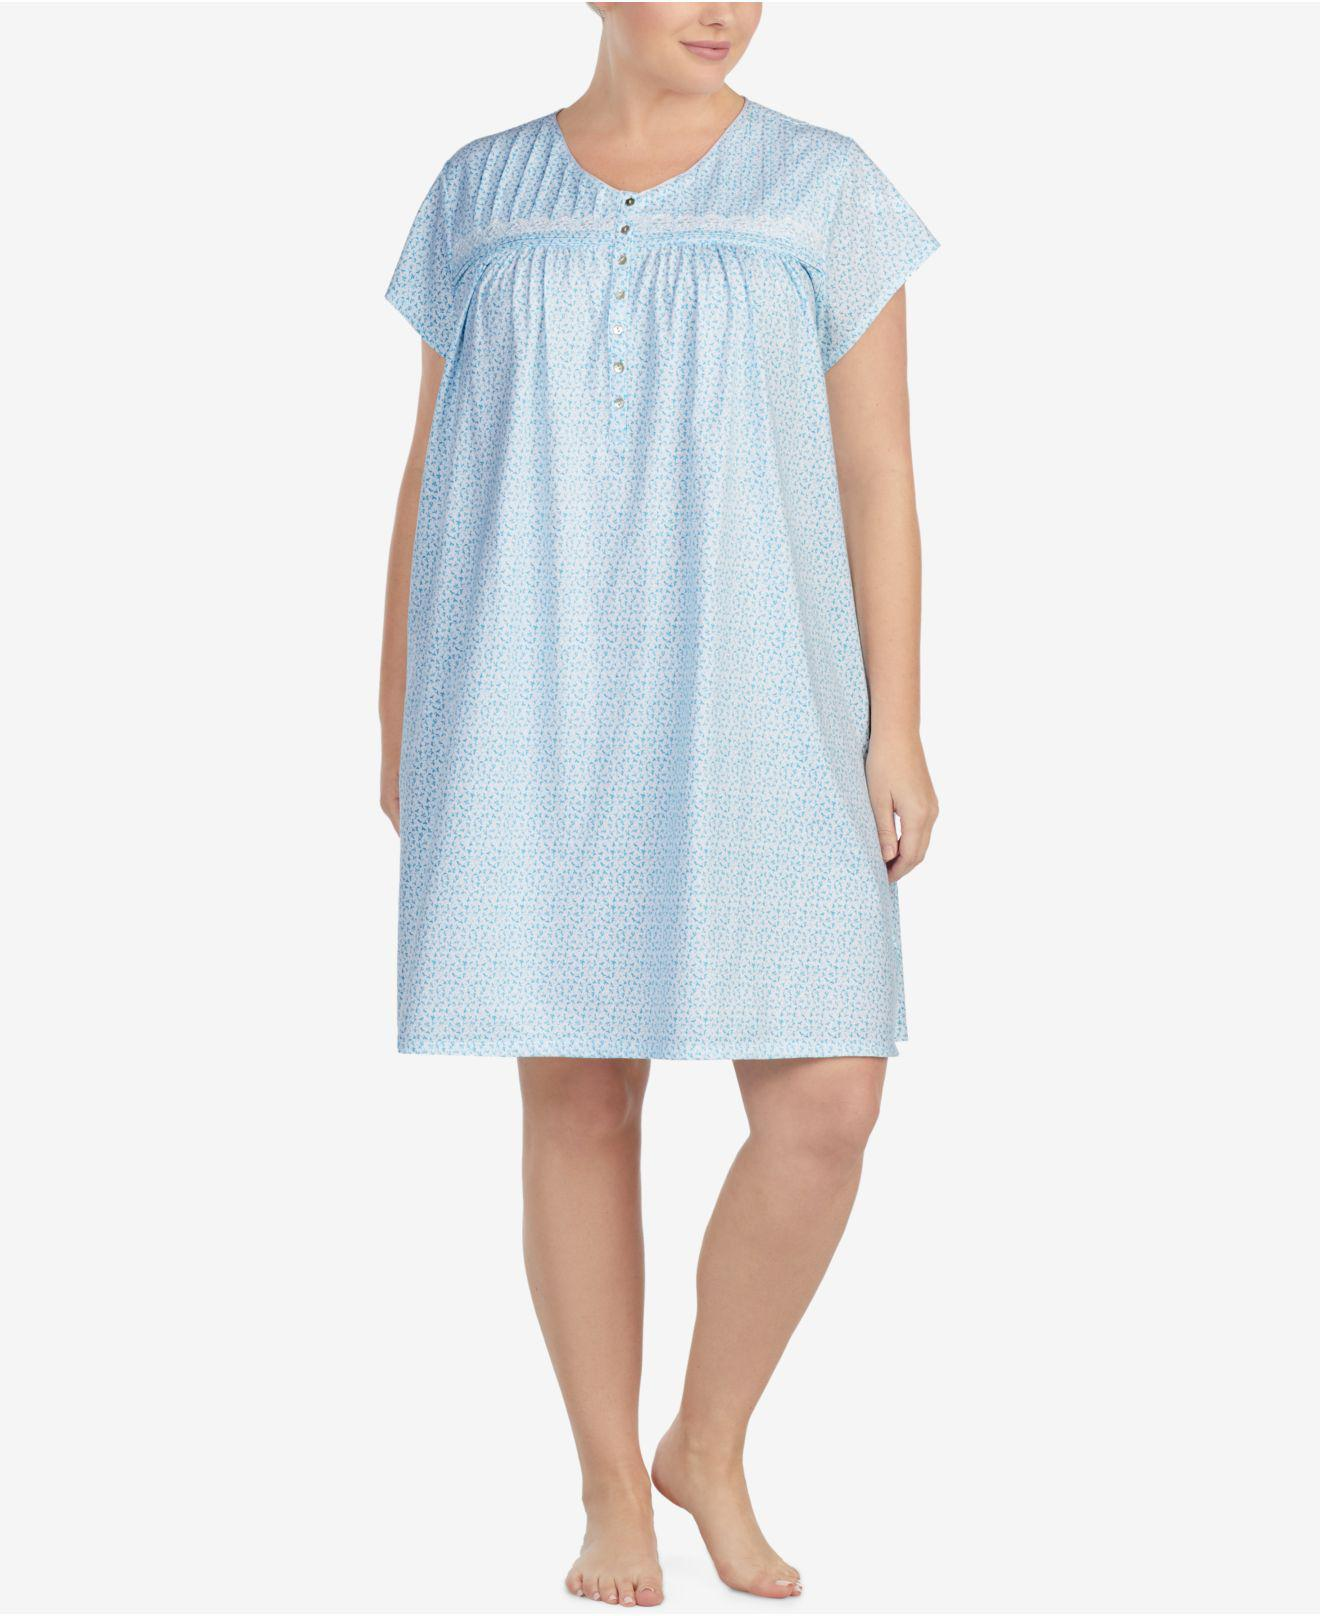 Cotton, Nightgowns Pajamas & Robes: inerloadsr5s.gq - Your Online Pajamas & Robes Store! Get 5% in rewards with Club O! Coupon Activated! Skip to main content FREE Shipping & Easy Returns* Search. La Cera Women's Multicolor Cat Print Button Front Night Gown. 4 Reviews.